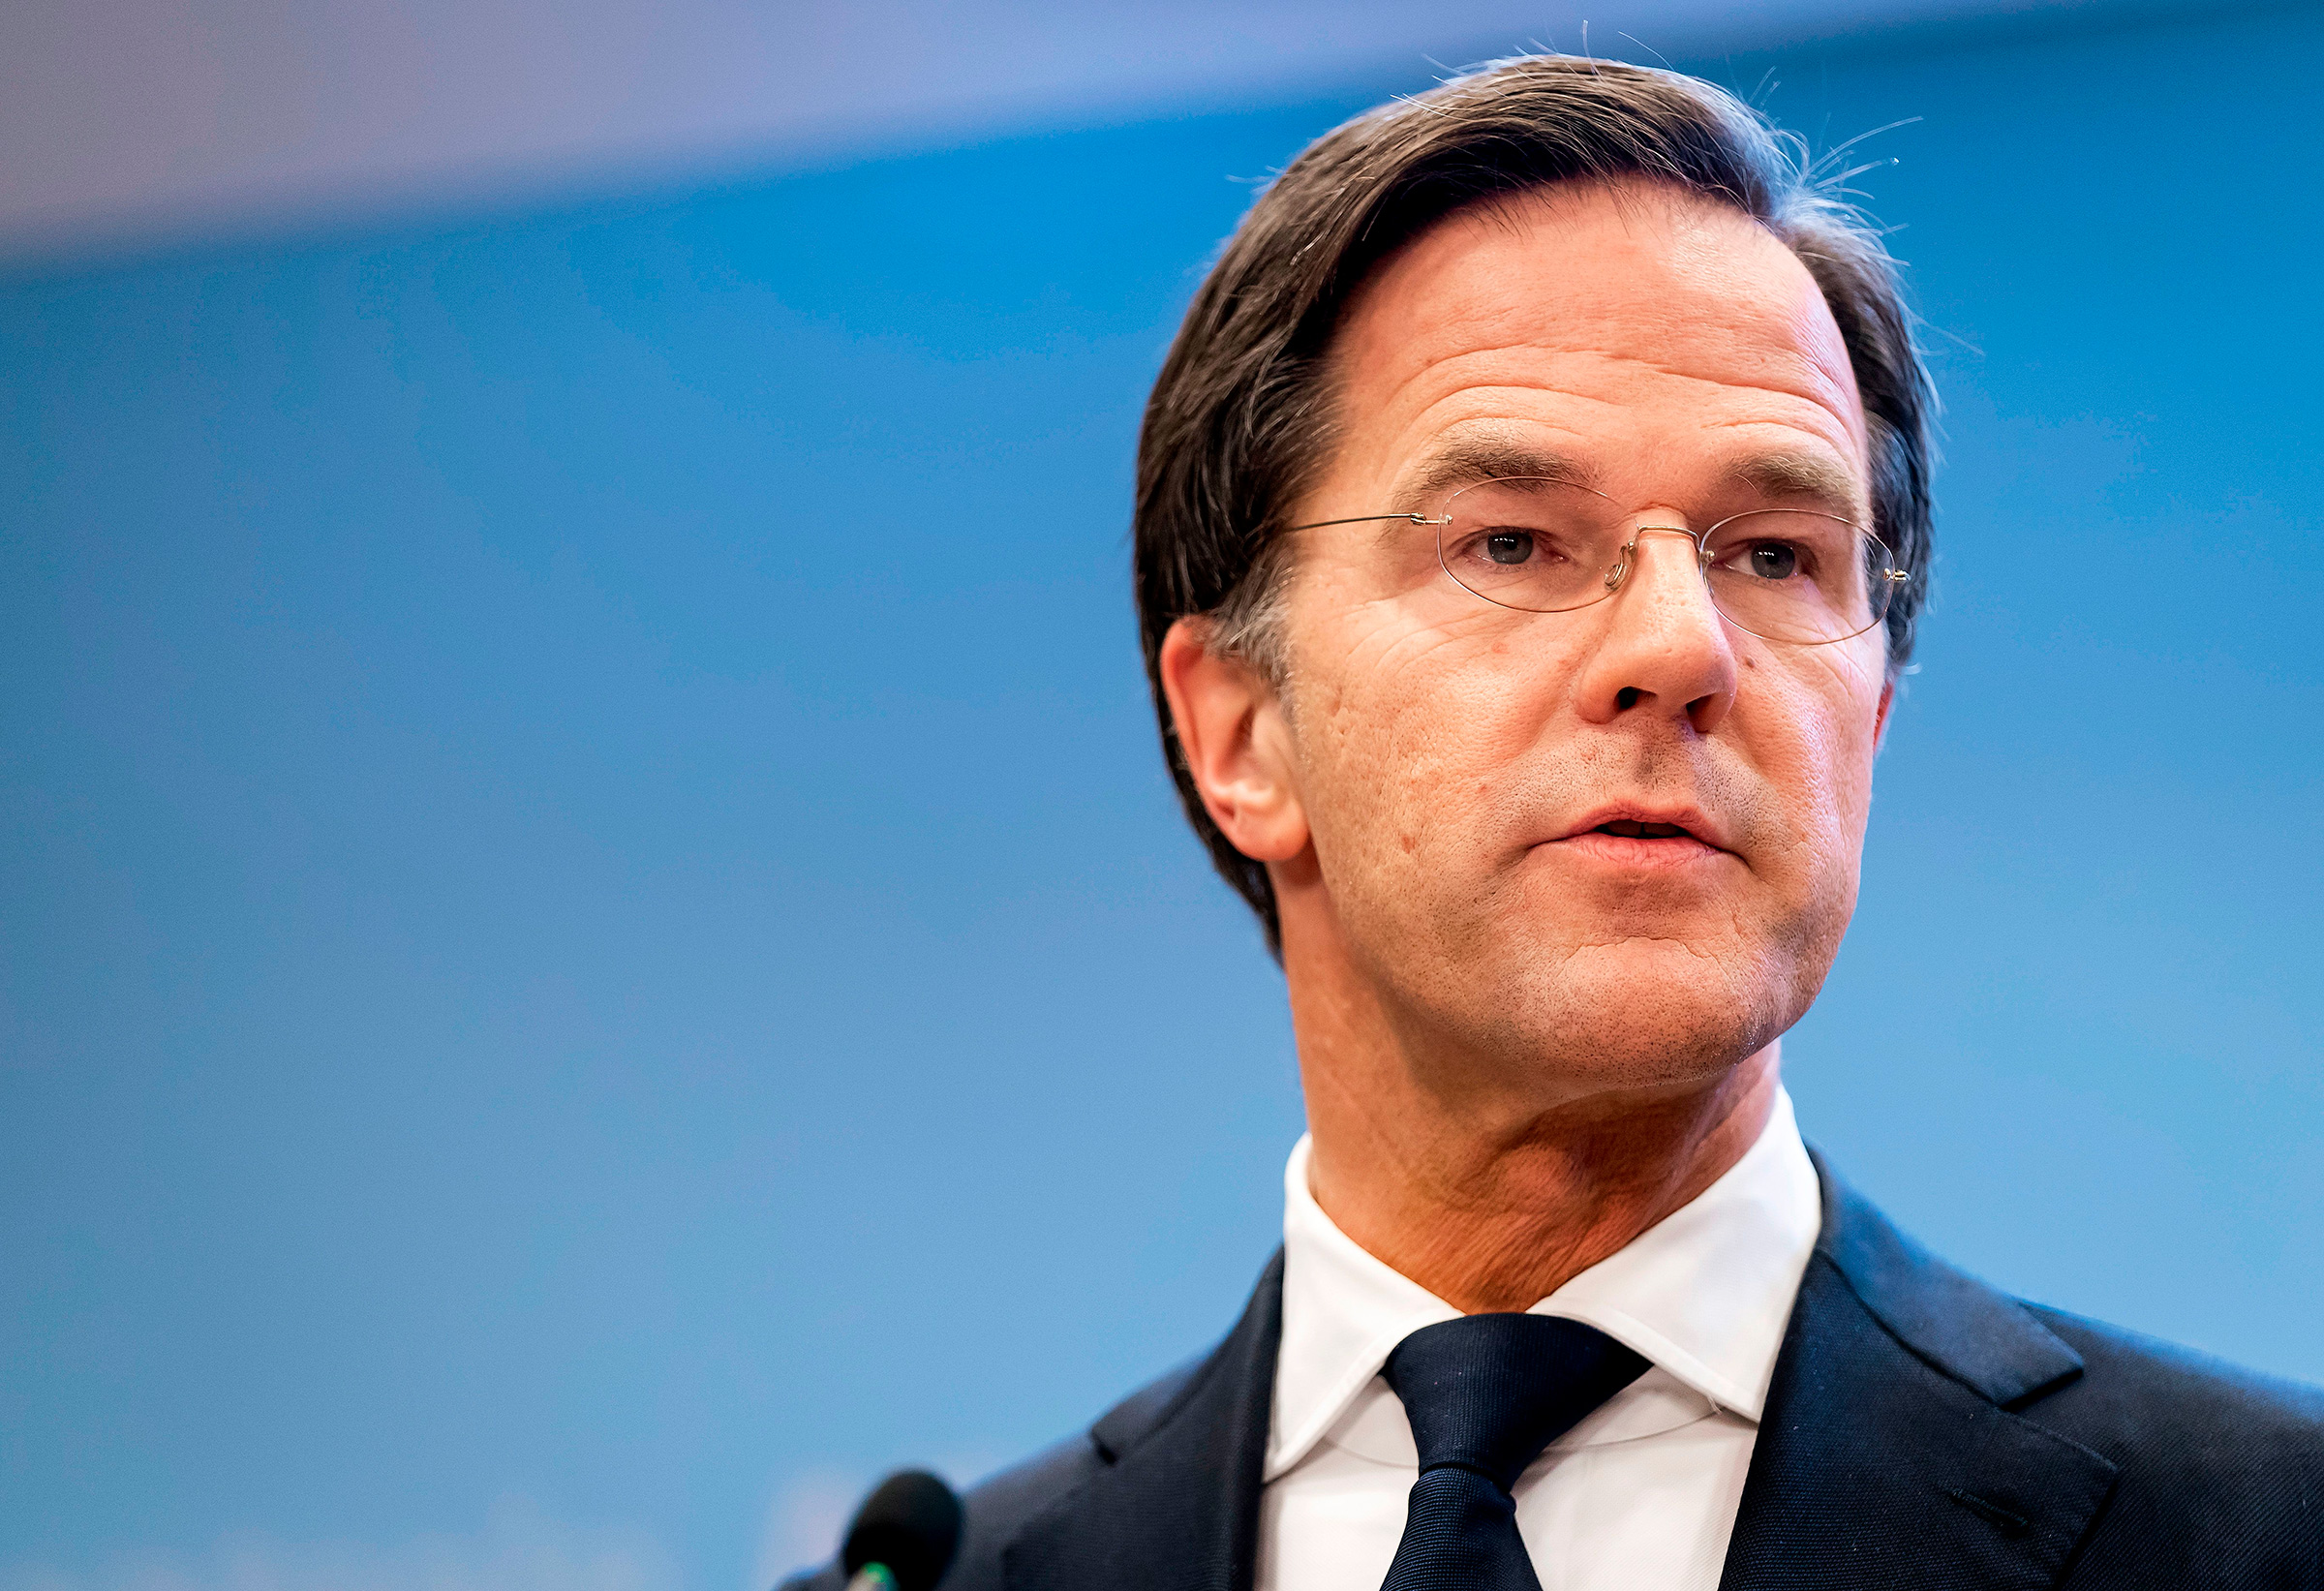 Dutch Prime Minister Mark Rutte speaks about the country's Covid-19 restrictions during a press conference on January 12 in The Hague, Netherlands.